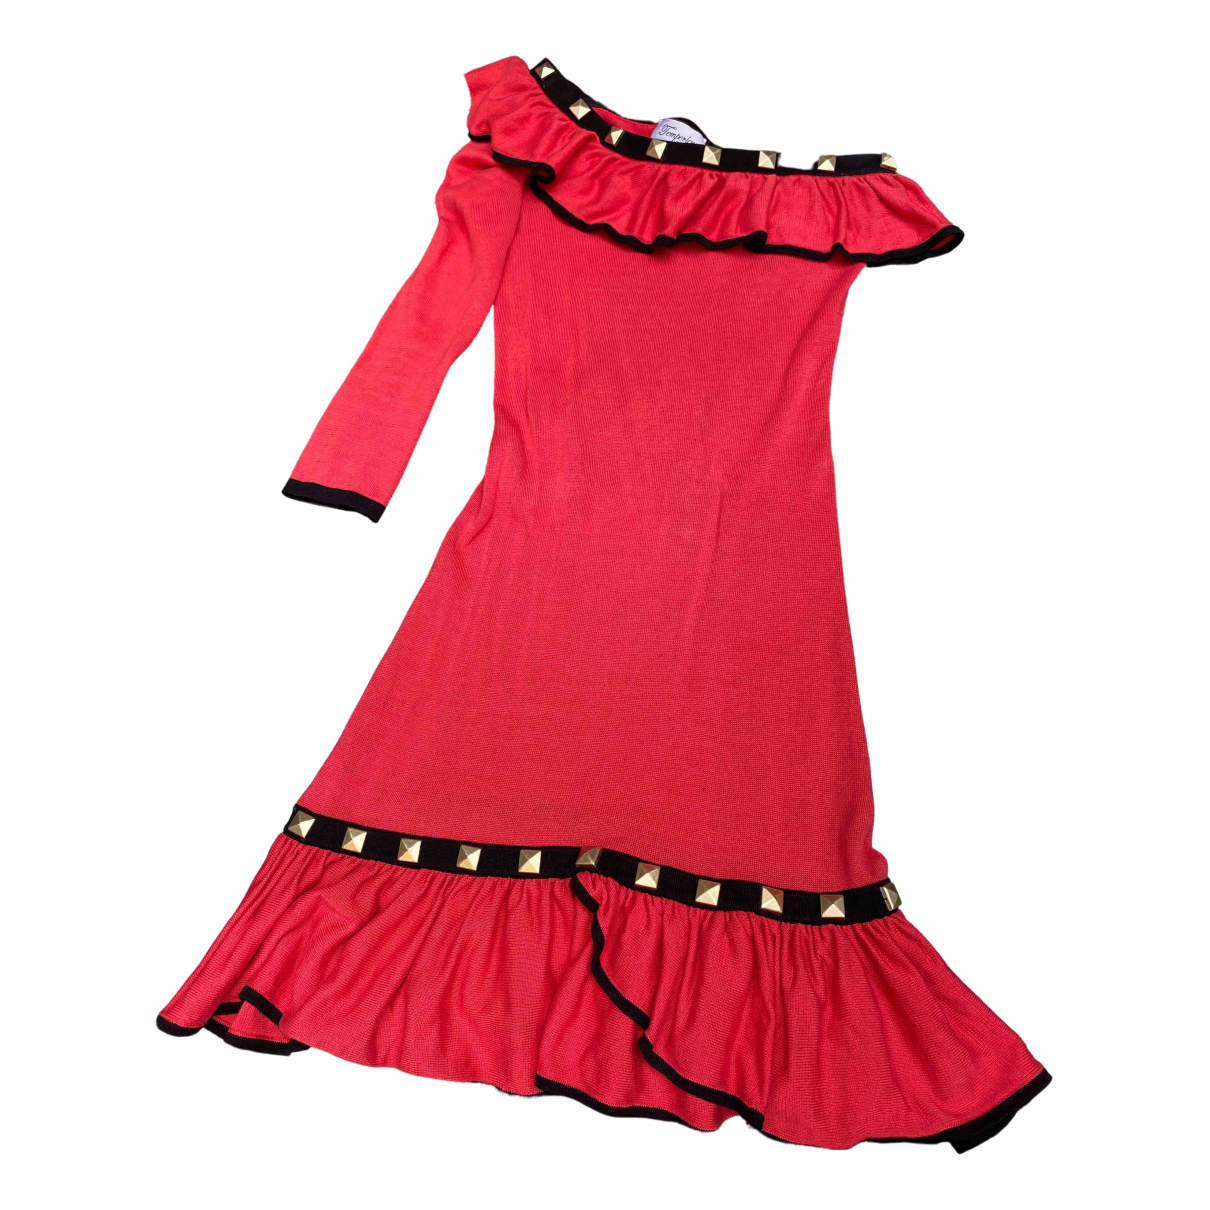 Temperley London \N Red Cotton dress for Women 8 UK